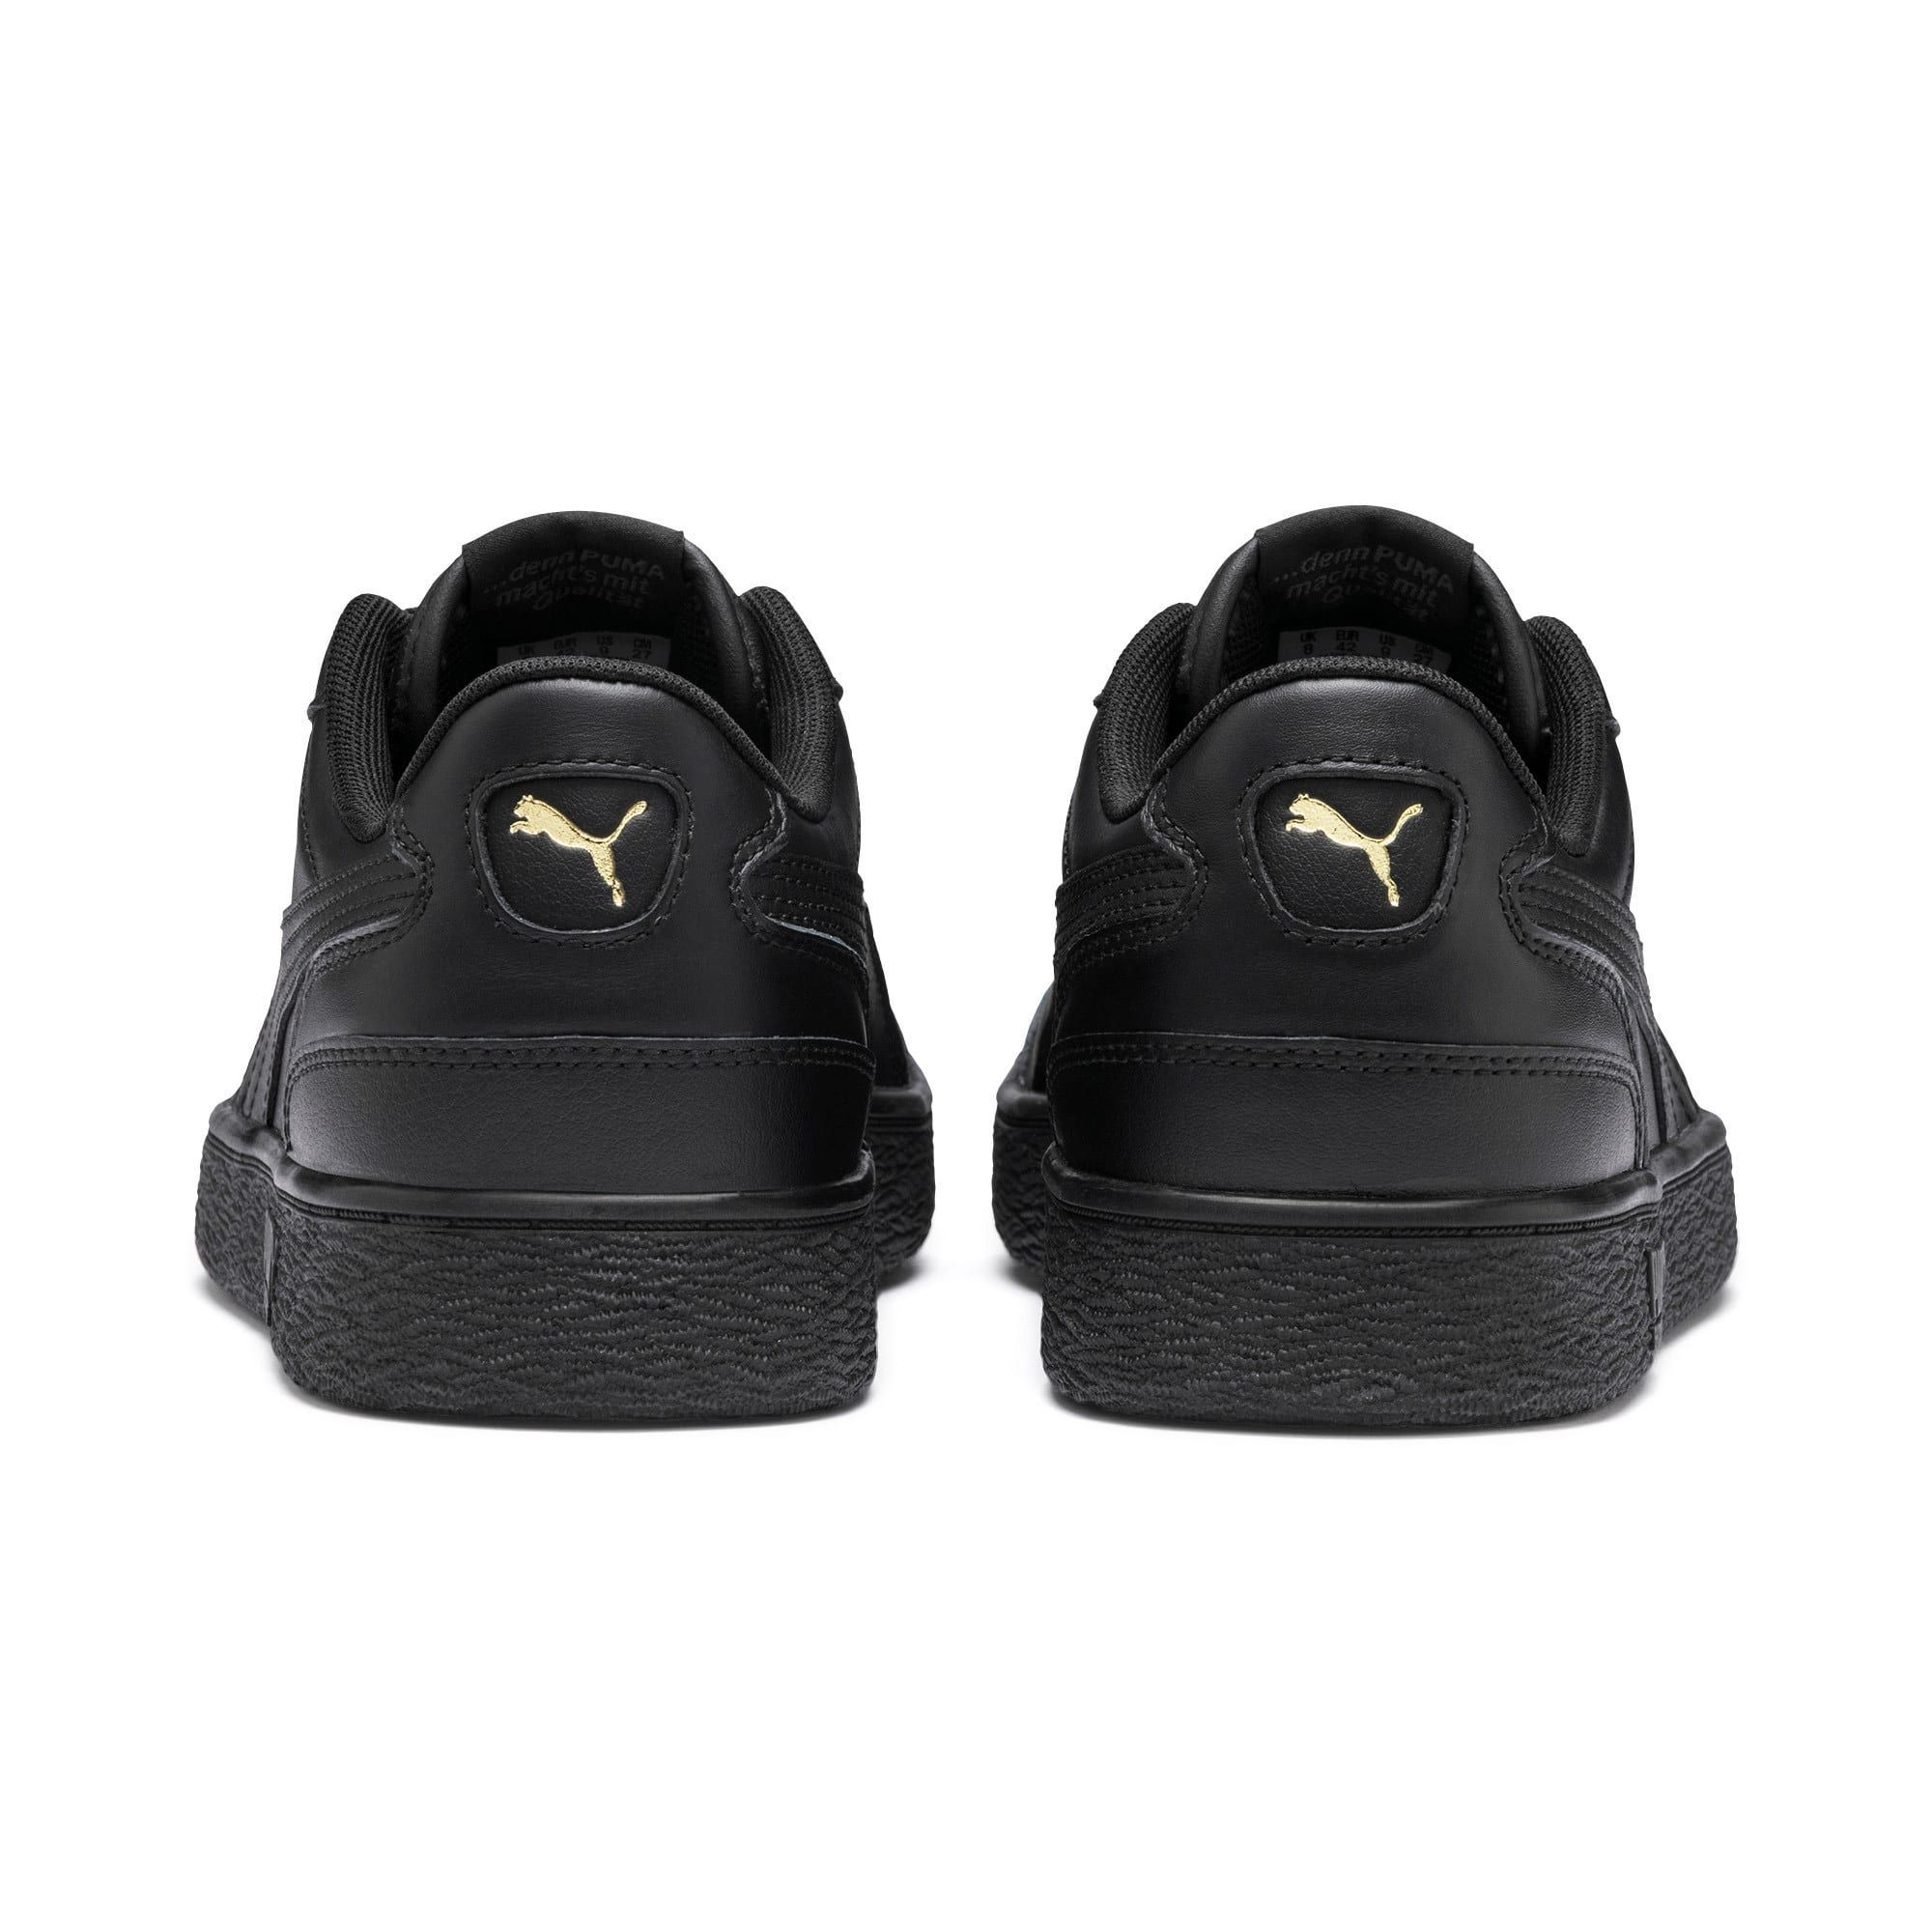 PUMA Ralph Sampson Lo Trainers in Black size 10.5 #menstreetstyles